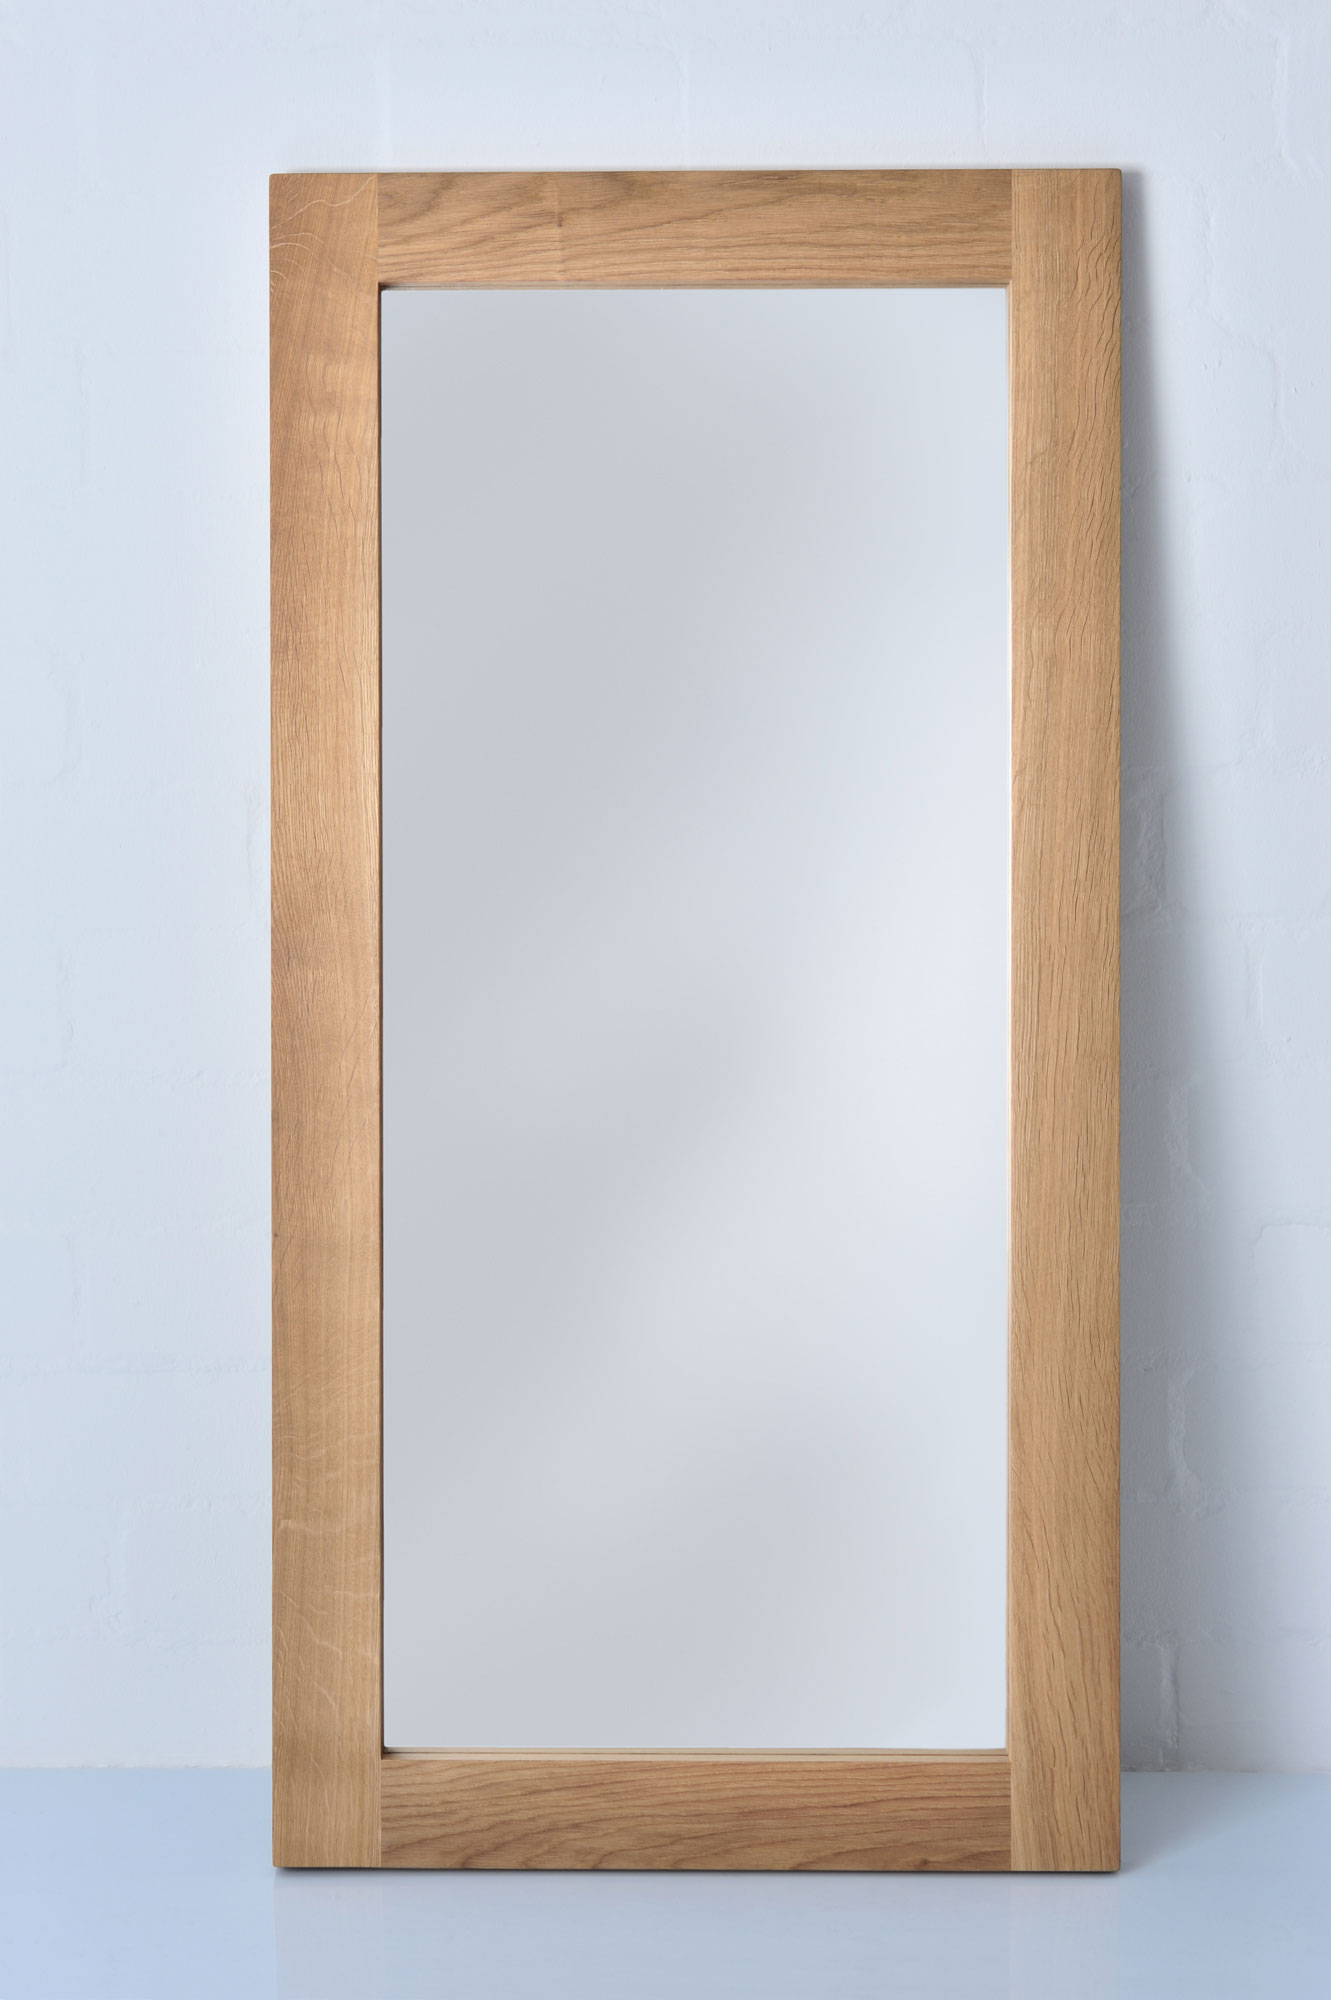 Solid Wood Mirror Accessory MIRROR nef0503 custom made in solid wood by vitamin design